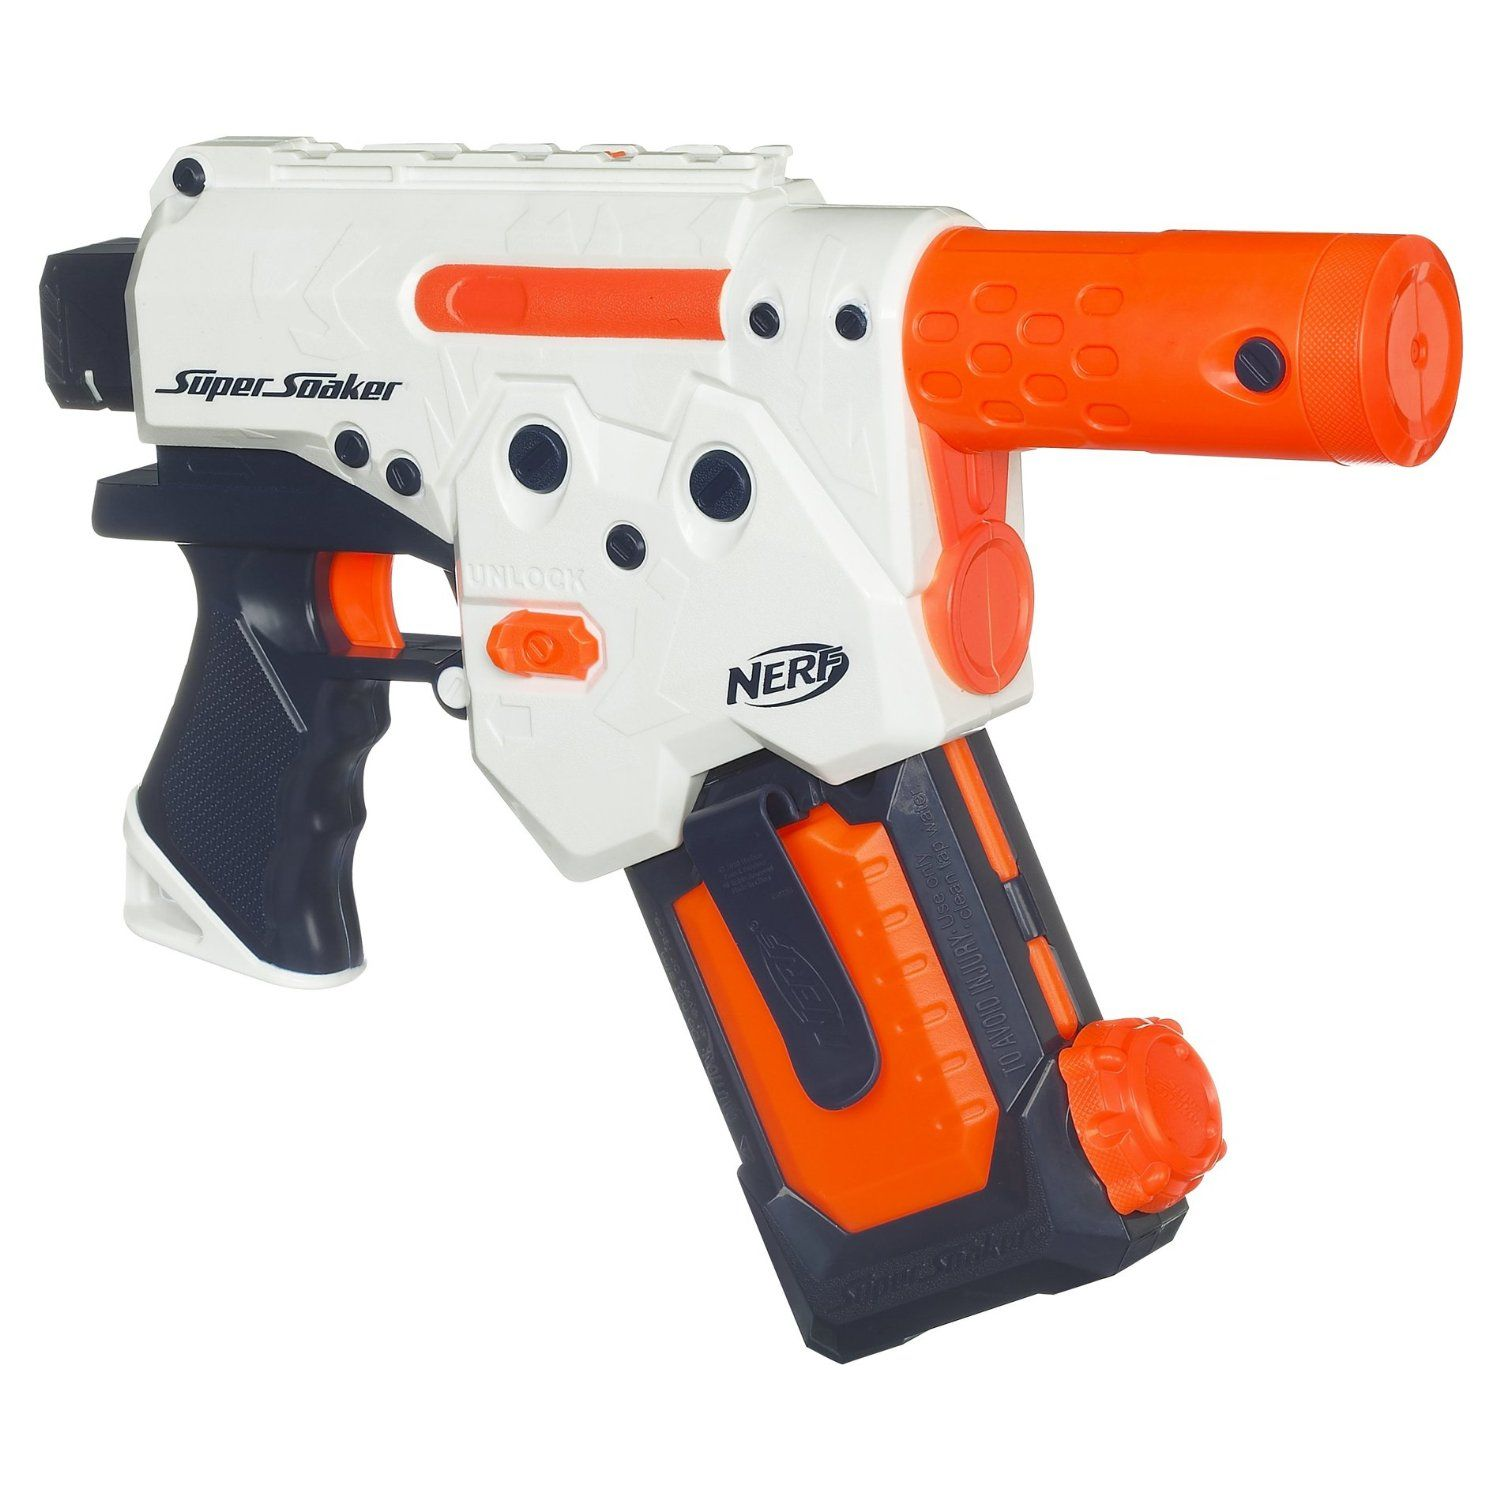 ... Nerf Rebelle Super Soaker Infinity Rush. Enlarged view of picture